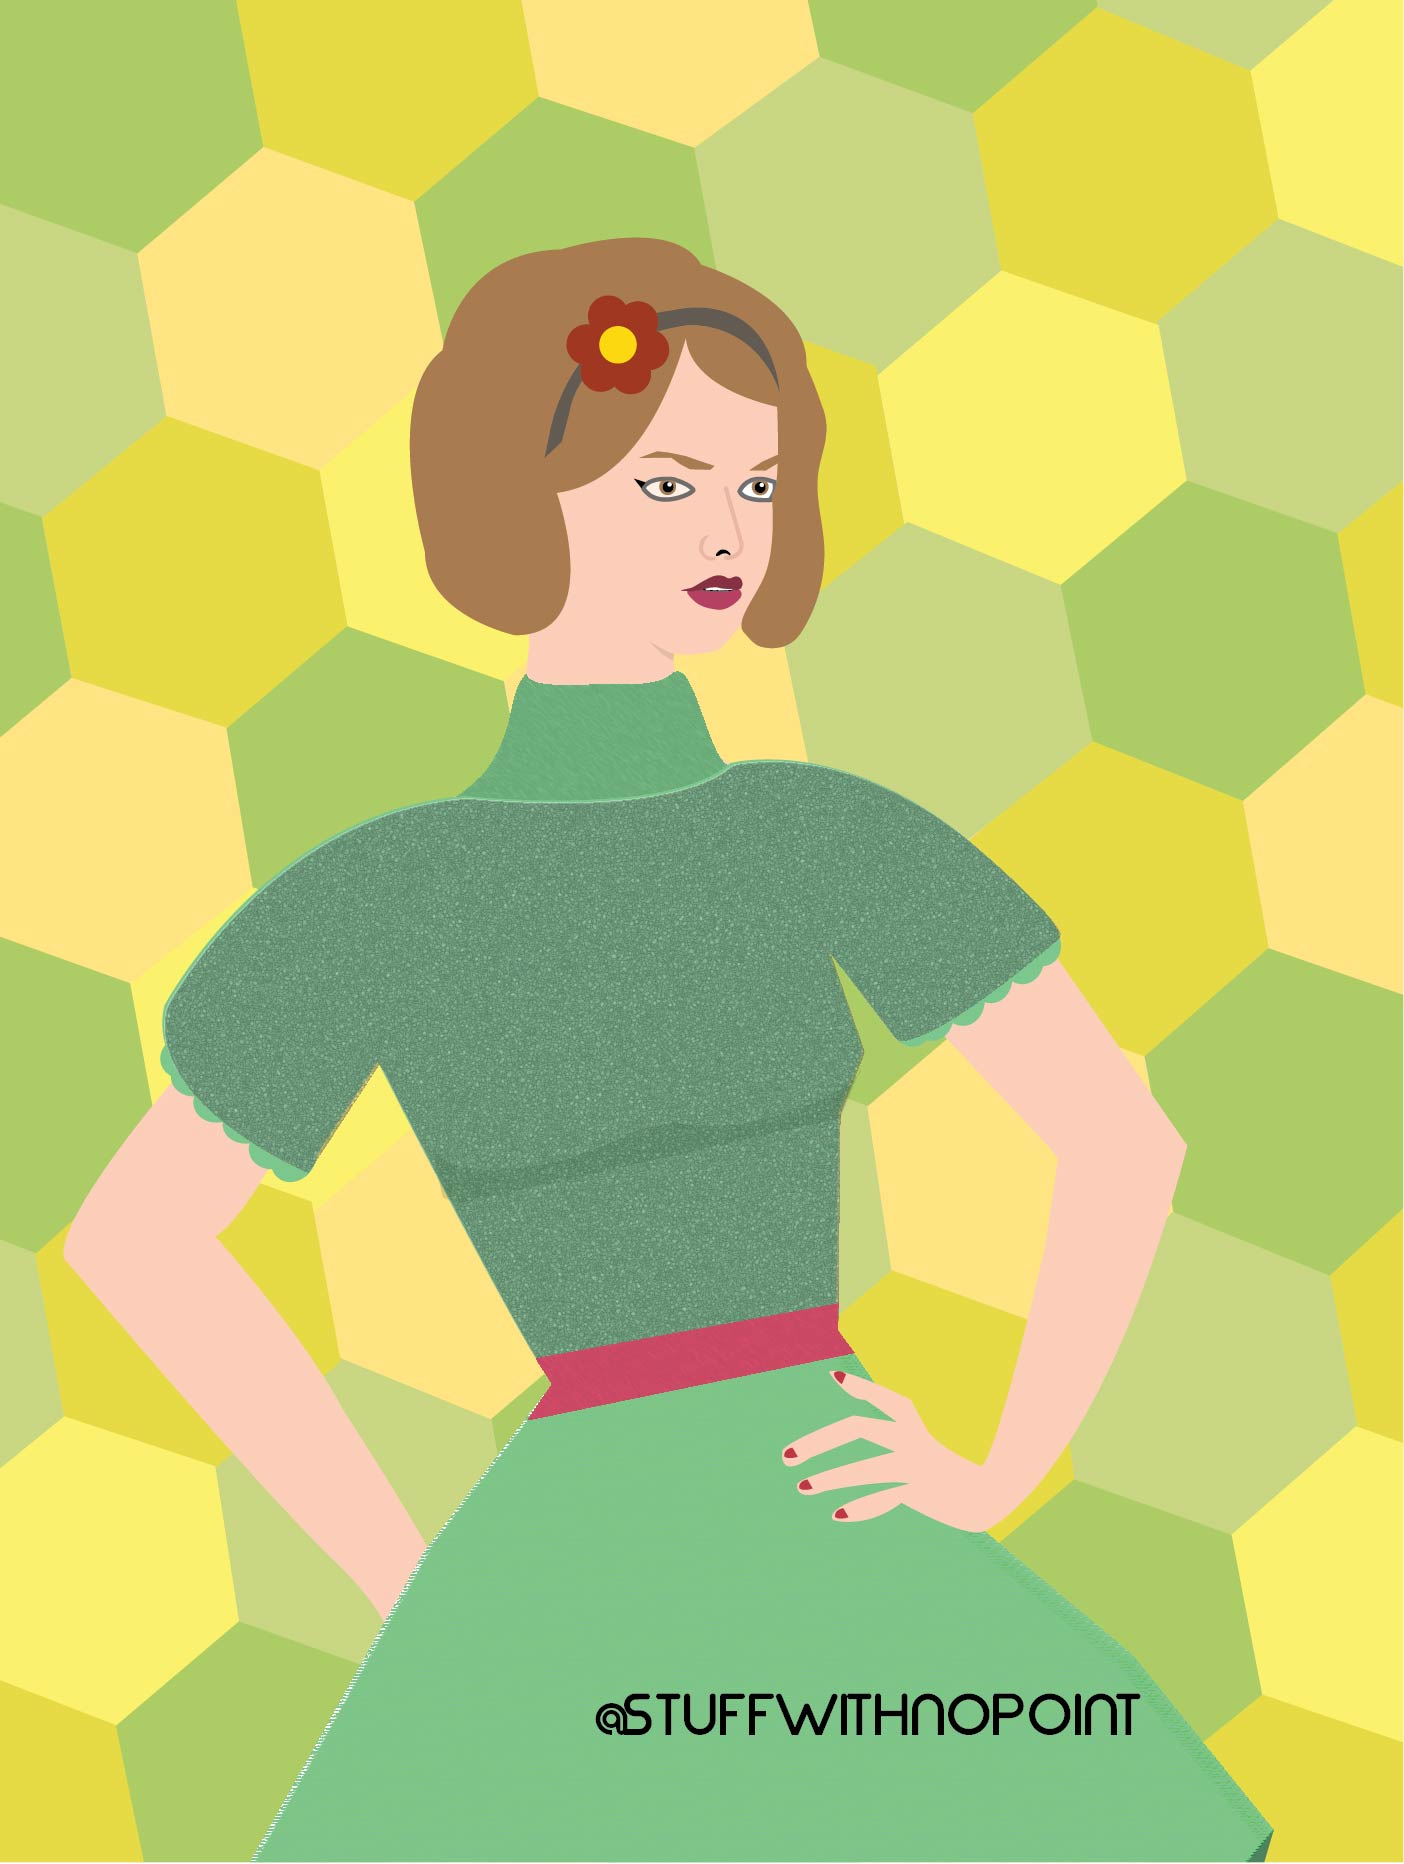 Lady in a dress with green/yellow honeycombs behind.